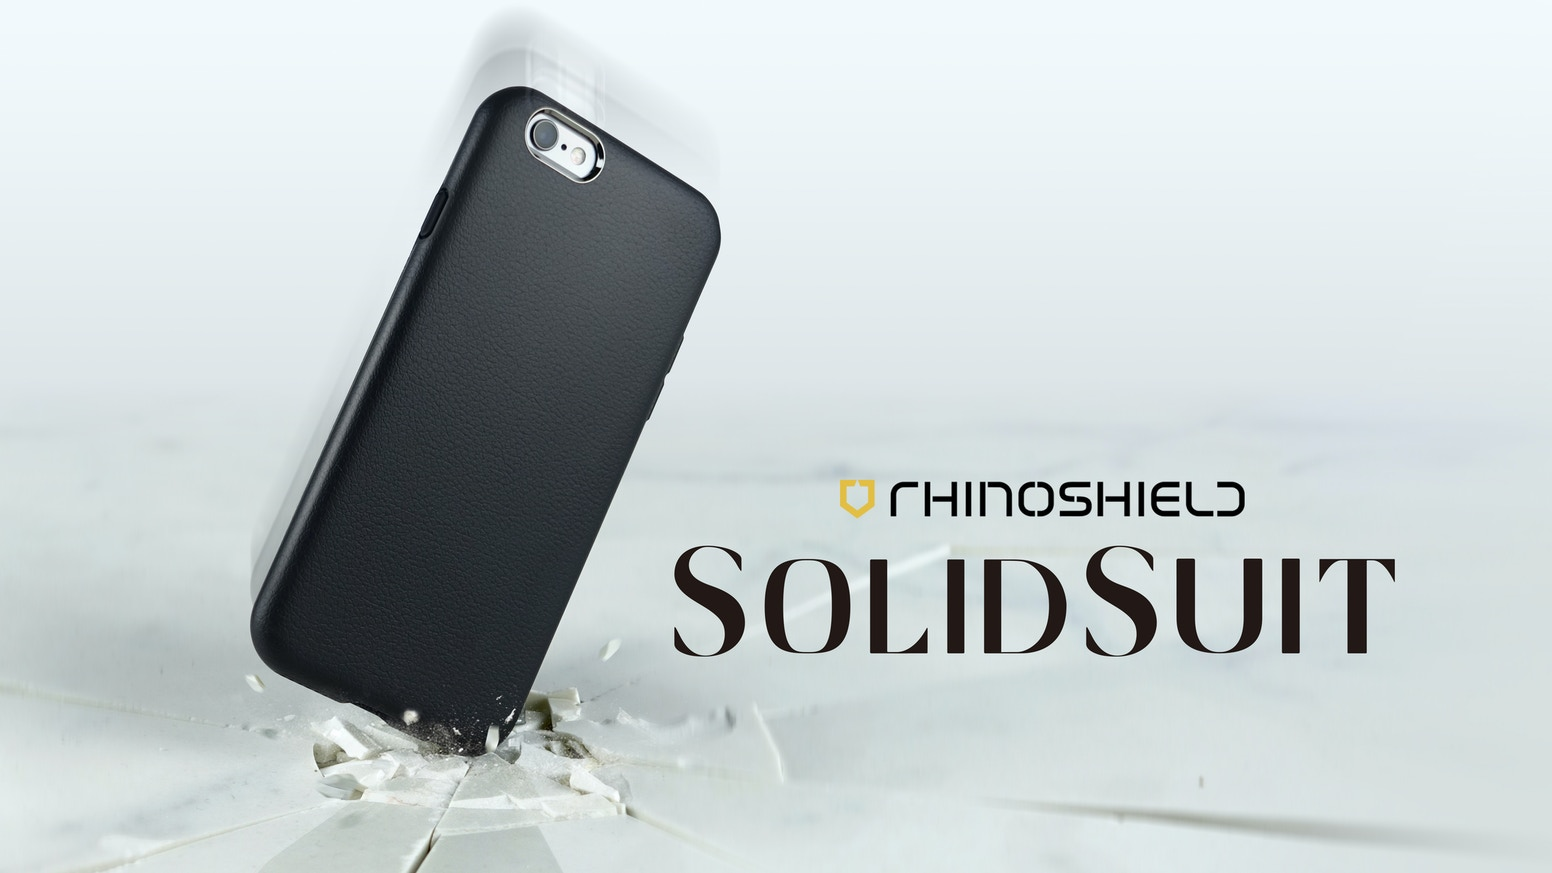 Amazing impact protection and timeless design; the most innovative iPhone case, with style.